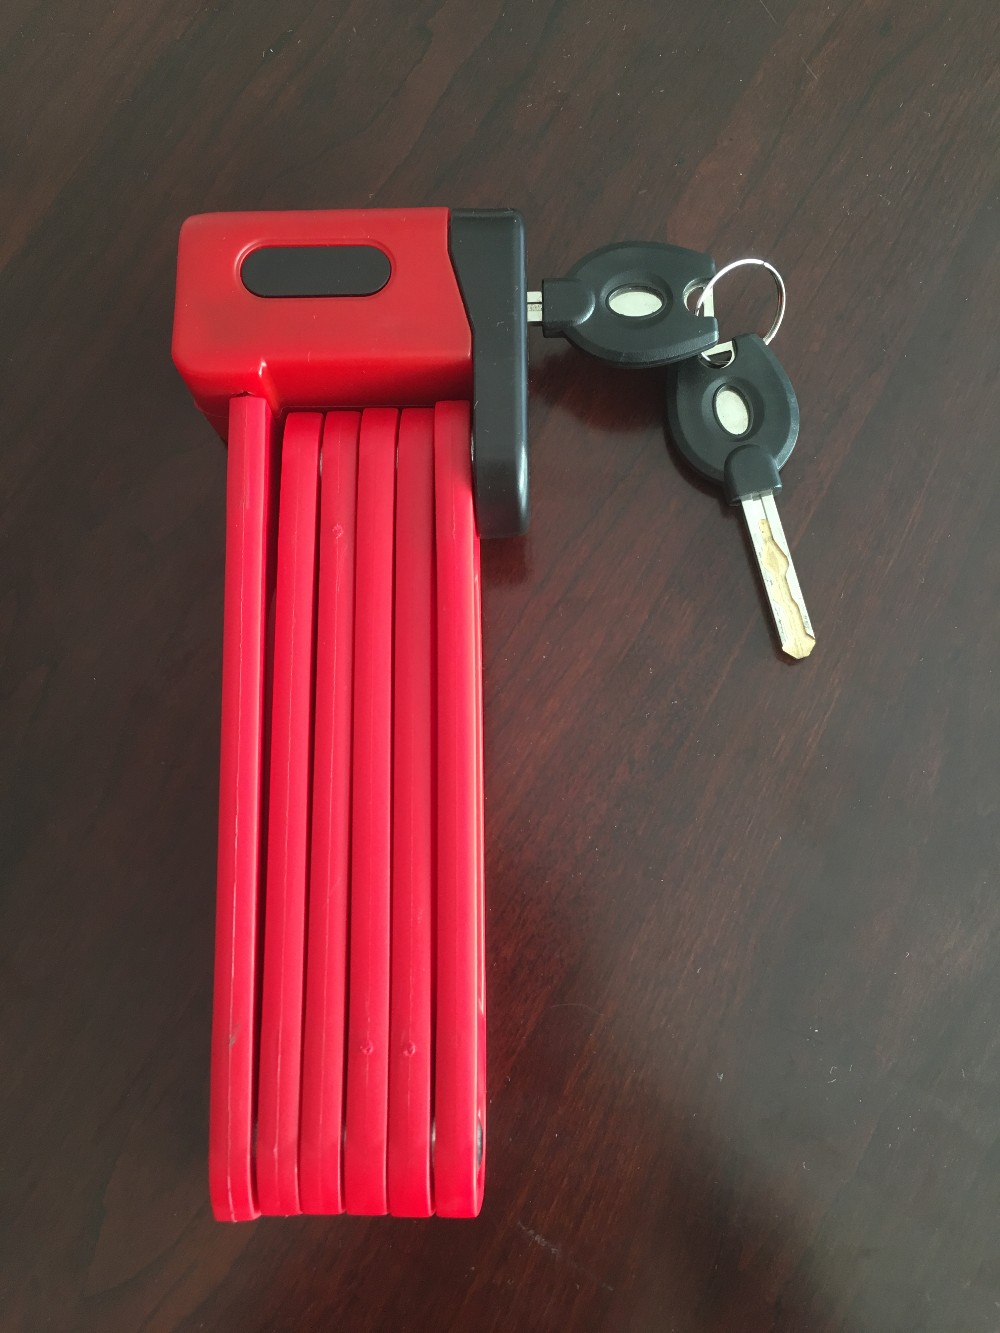 Folding bike lock with key